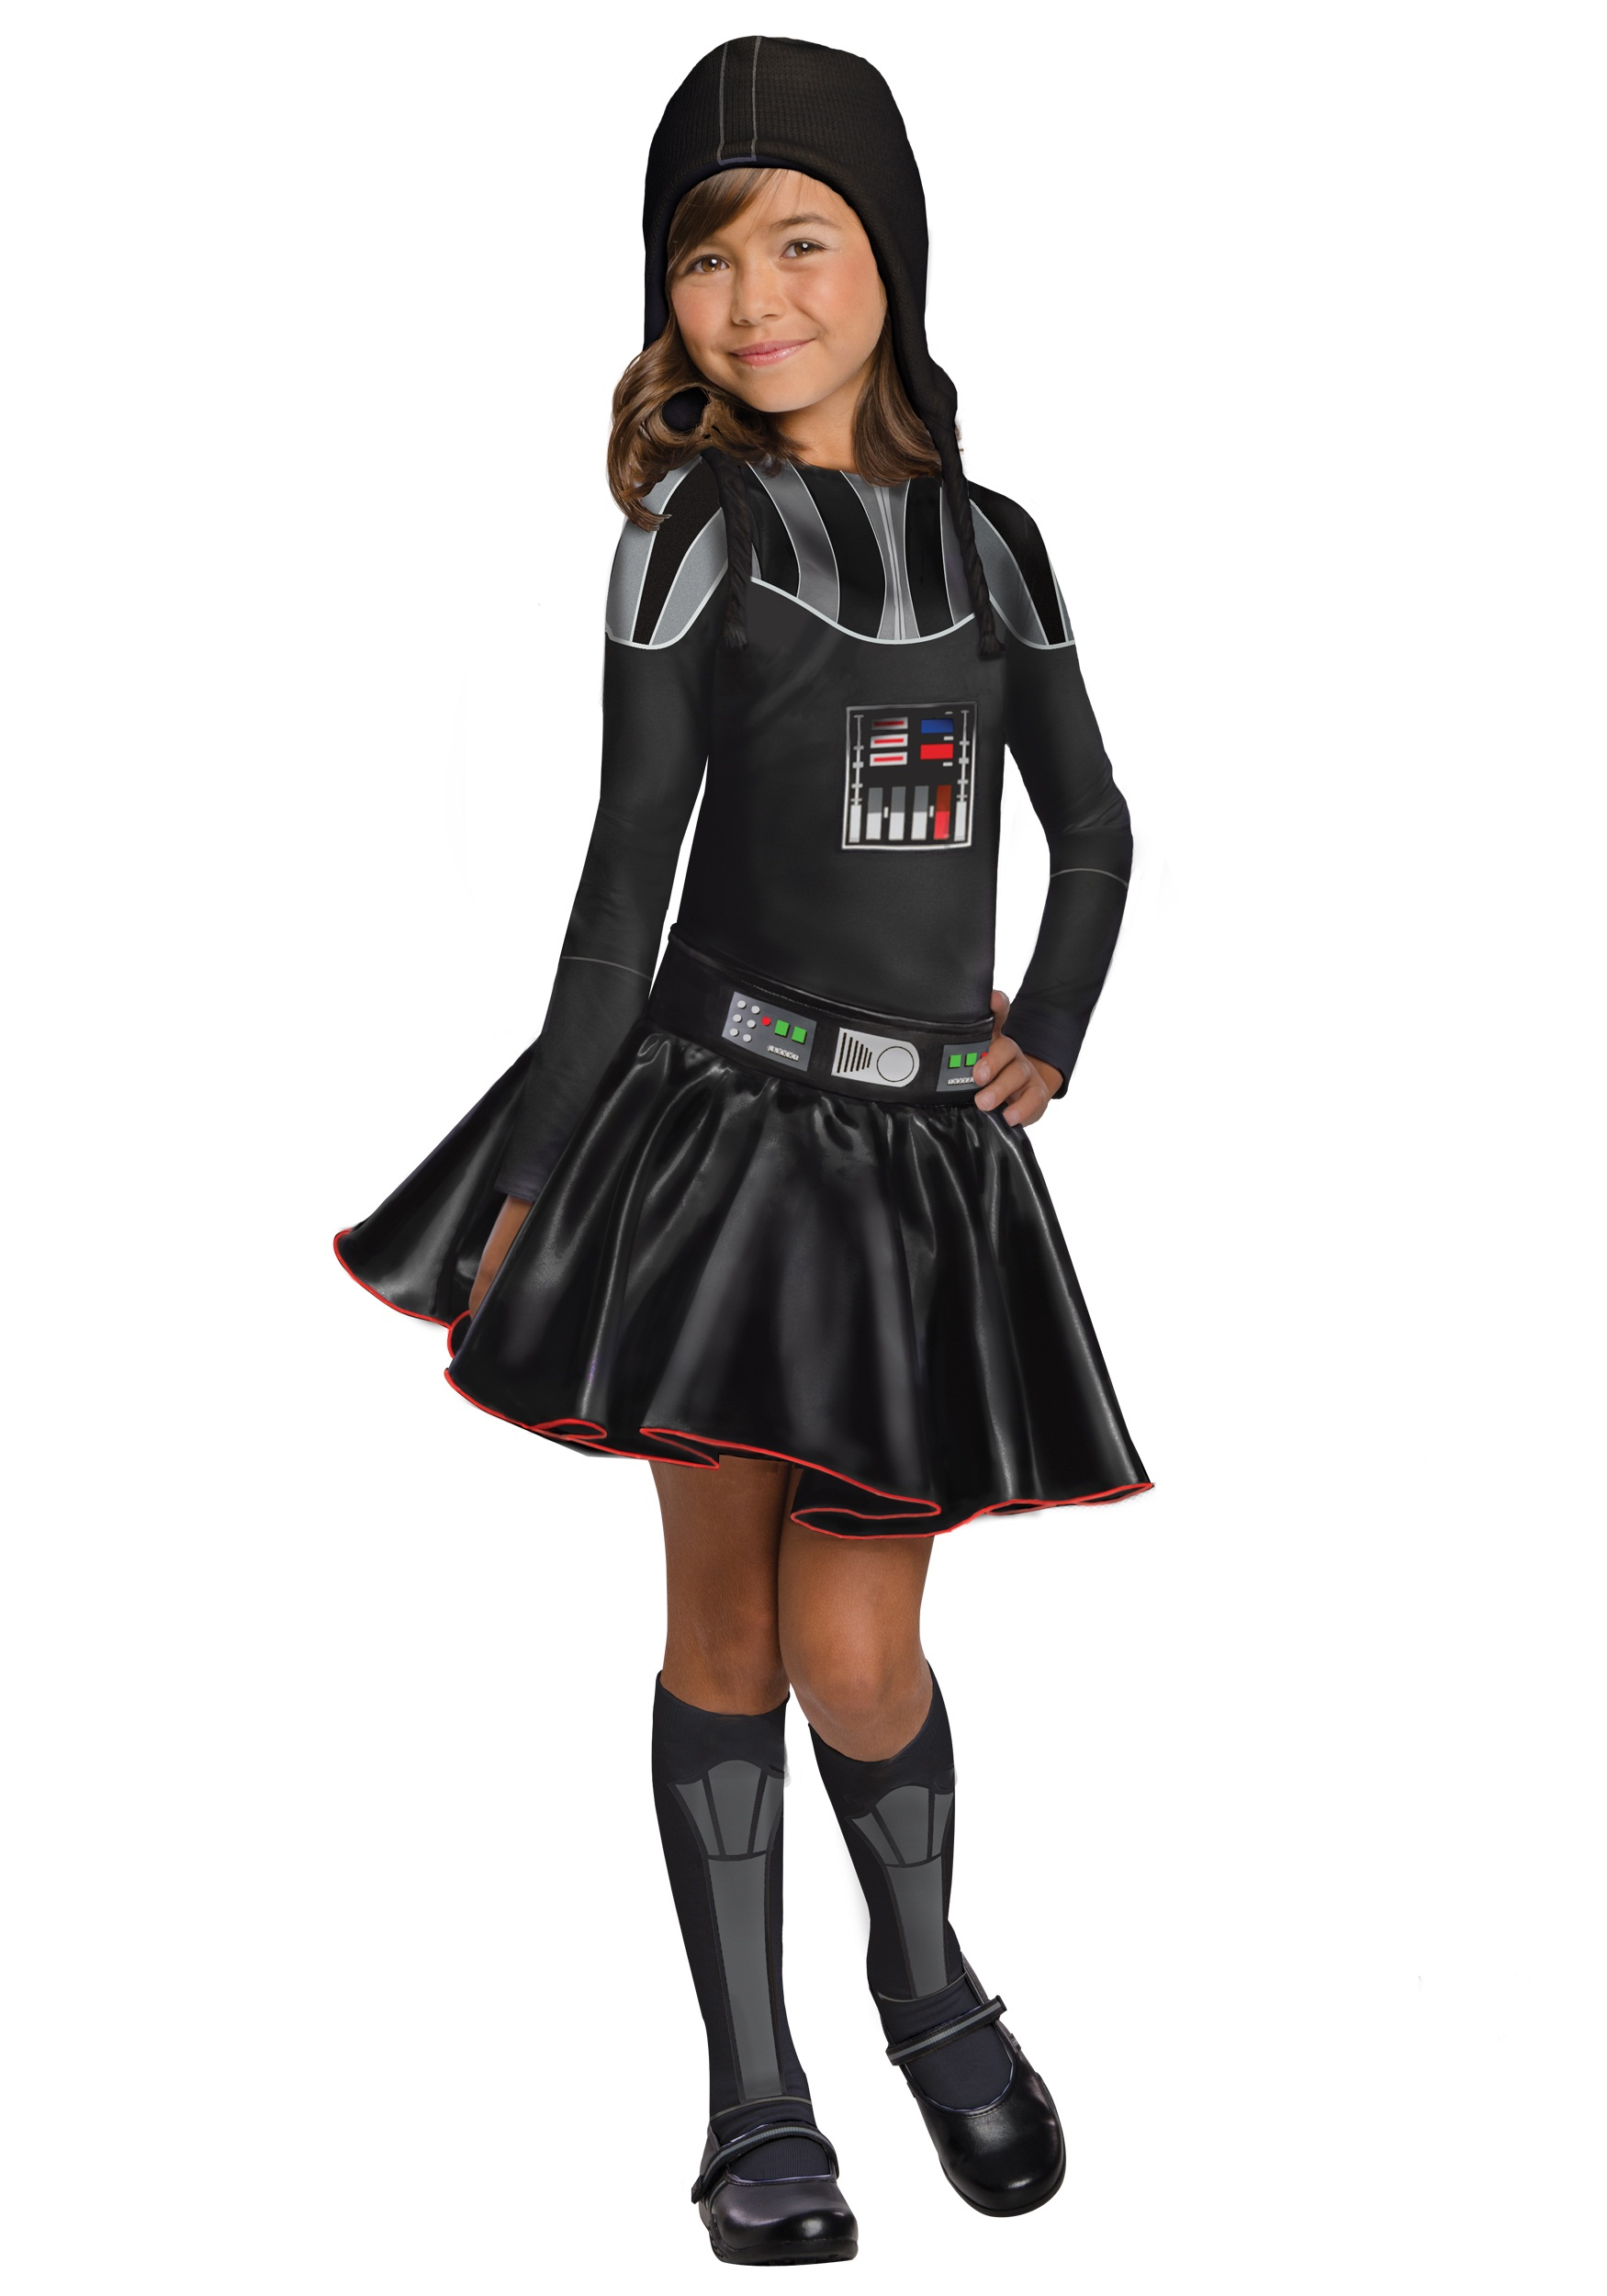 darth vader girls halloween costumes costume ideas dress star wars father costume kid. Black Bedroom Furniture Sets. Home Design Ideas